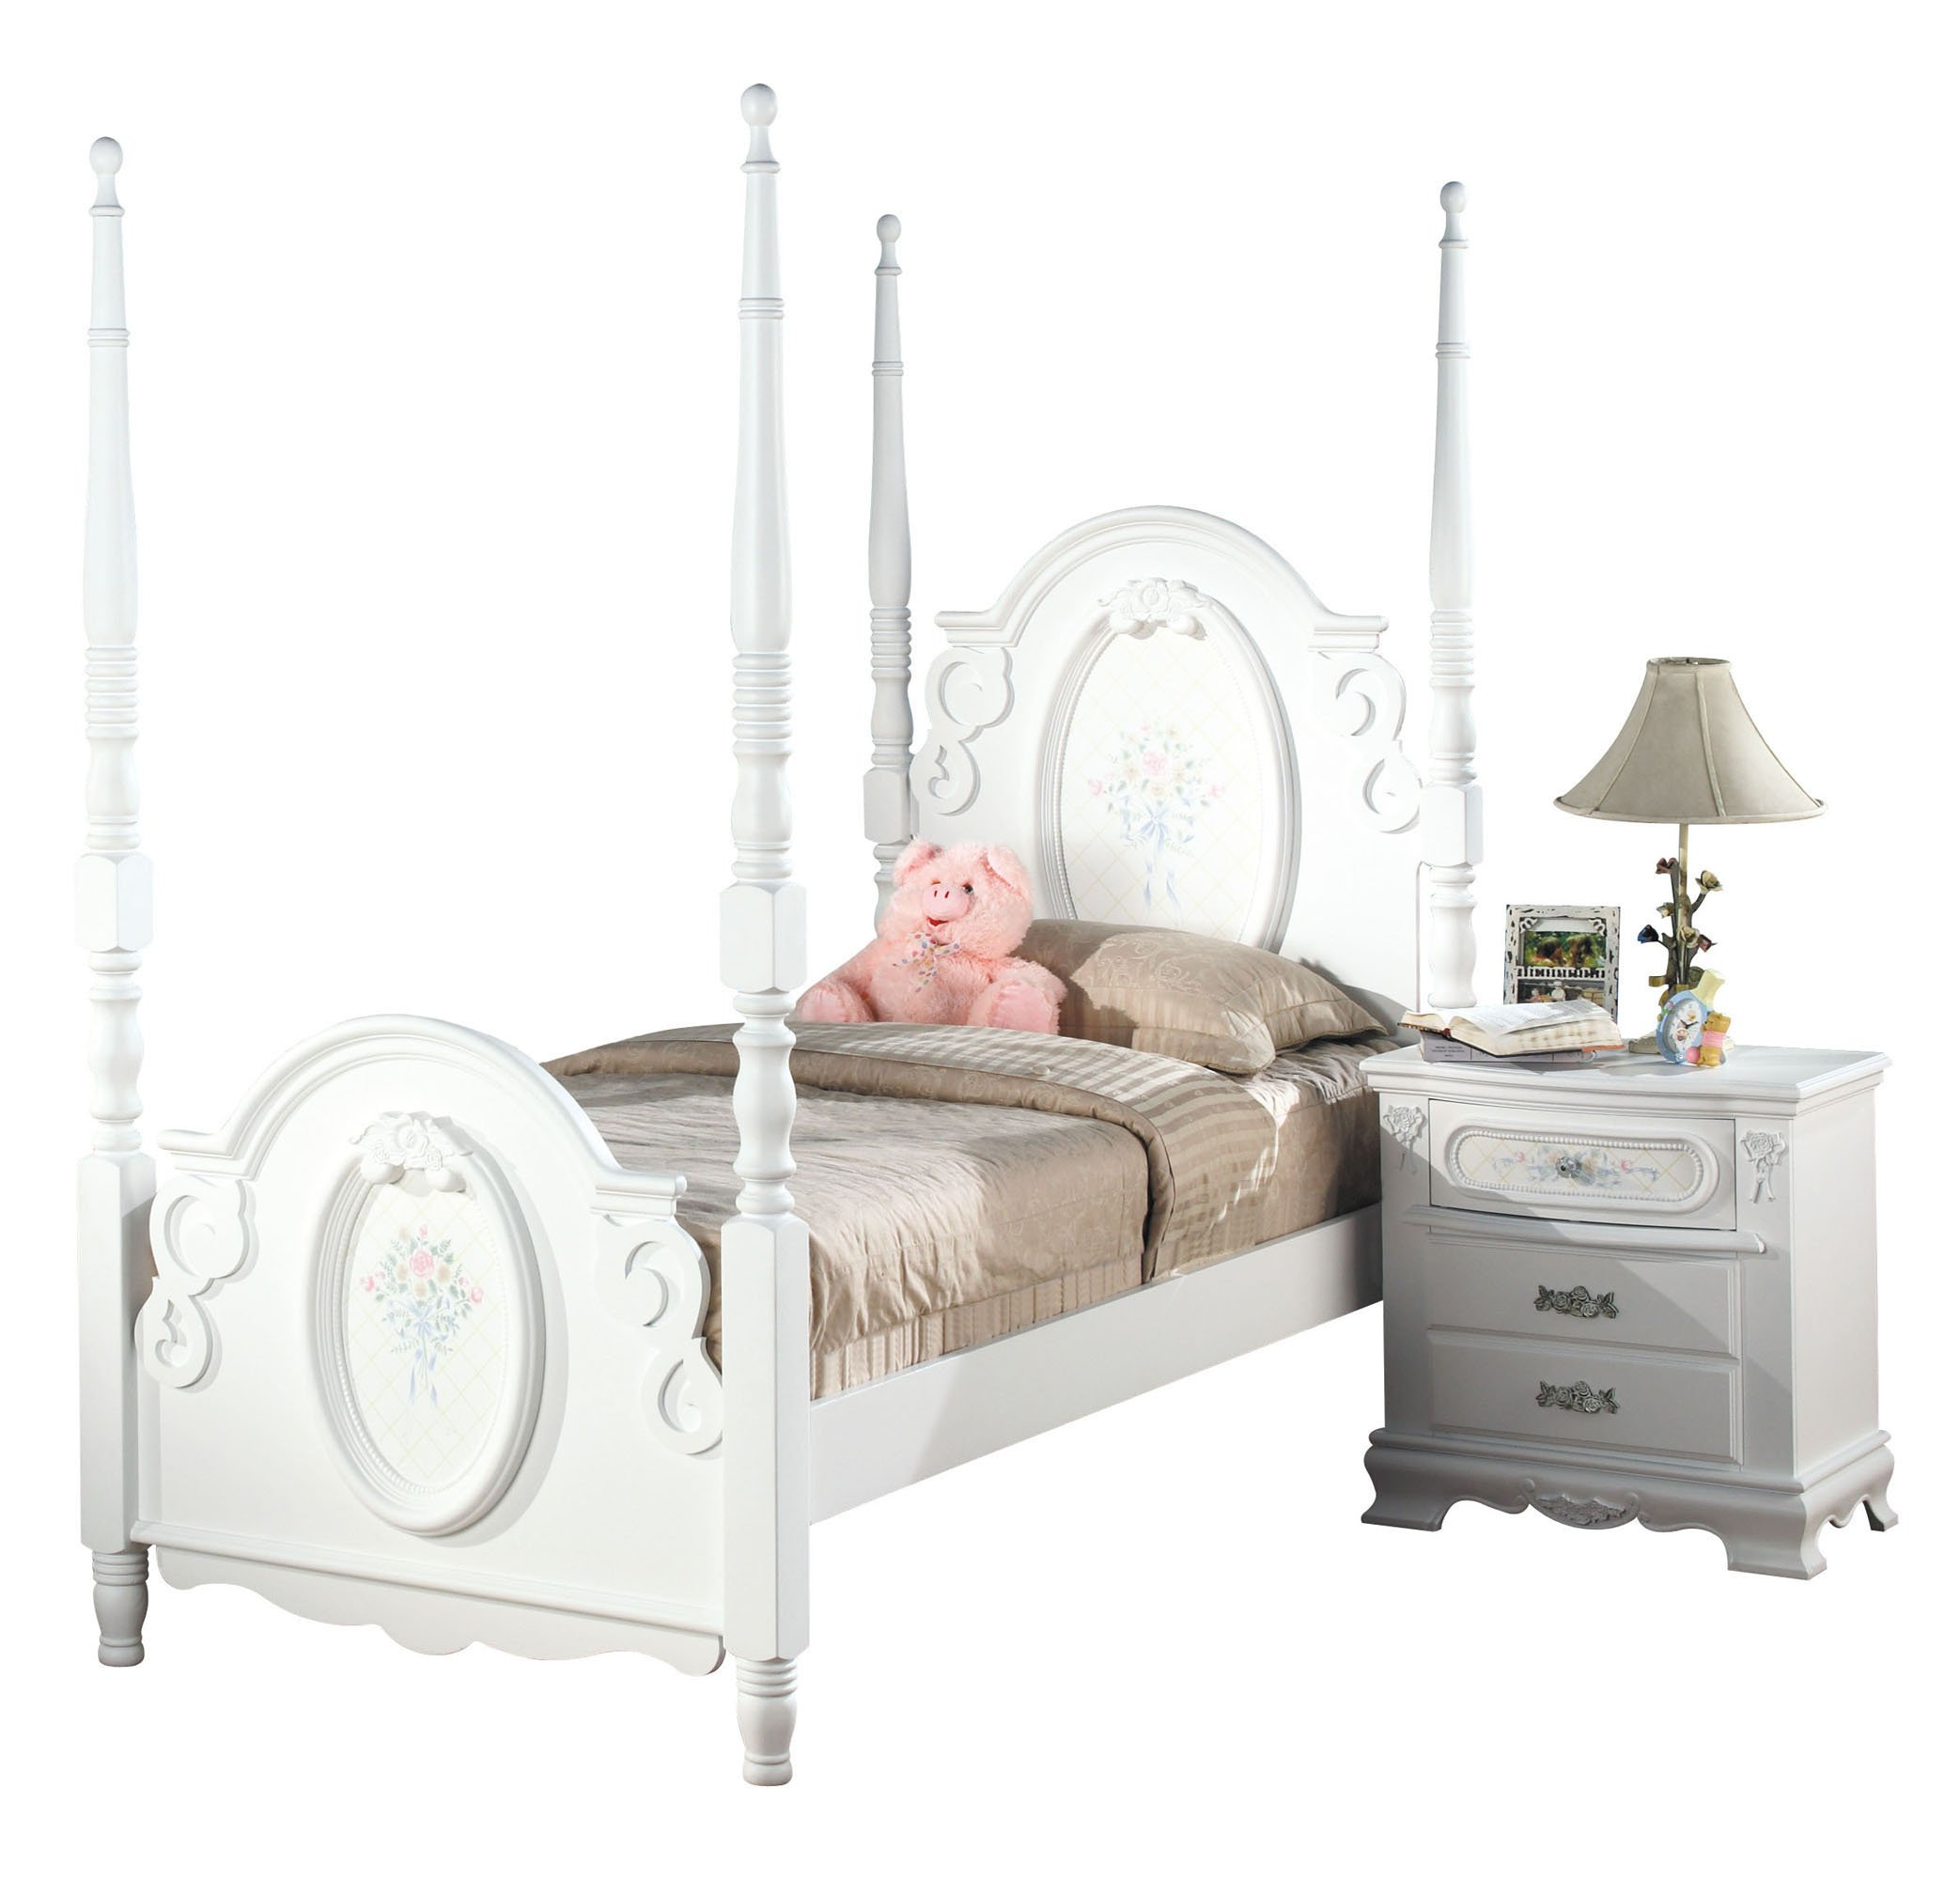 ACME 01660T Flora Post Bed, Twin, White Finish by acme